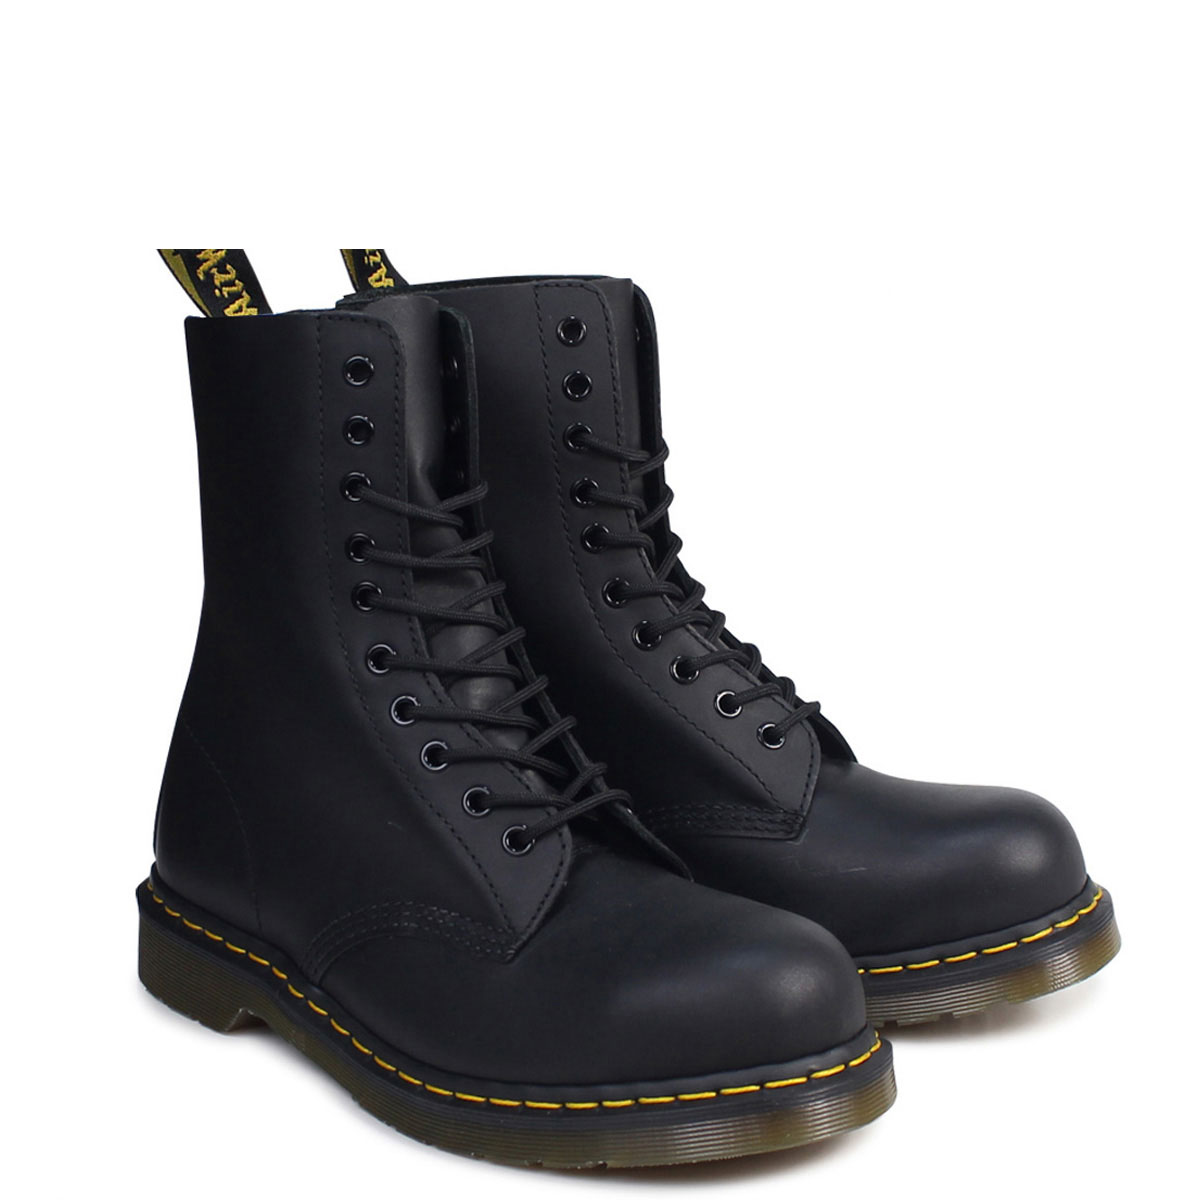 Whats up Sports  Dr.Martens Dr. Martens 1919 10 hole boot 10 EYELET BOOT  191911021 men women  2a40aad9ff